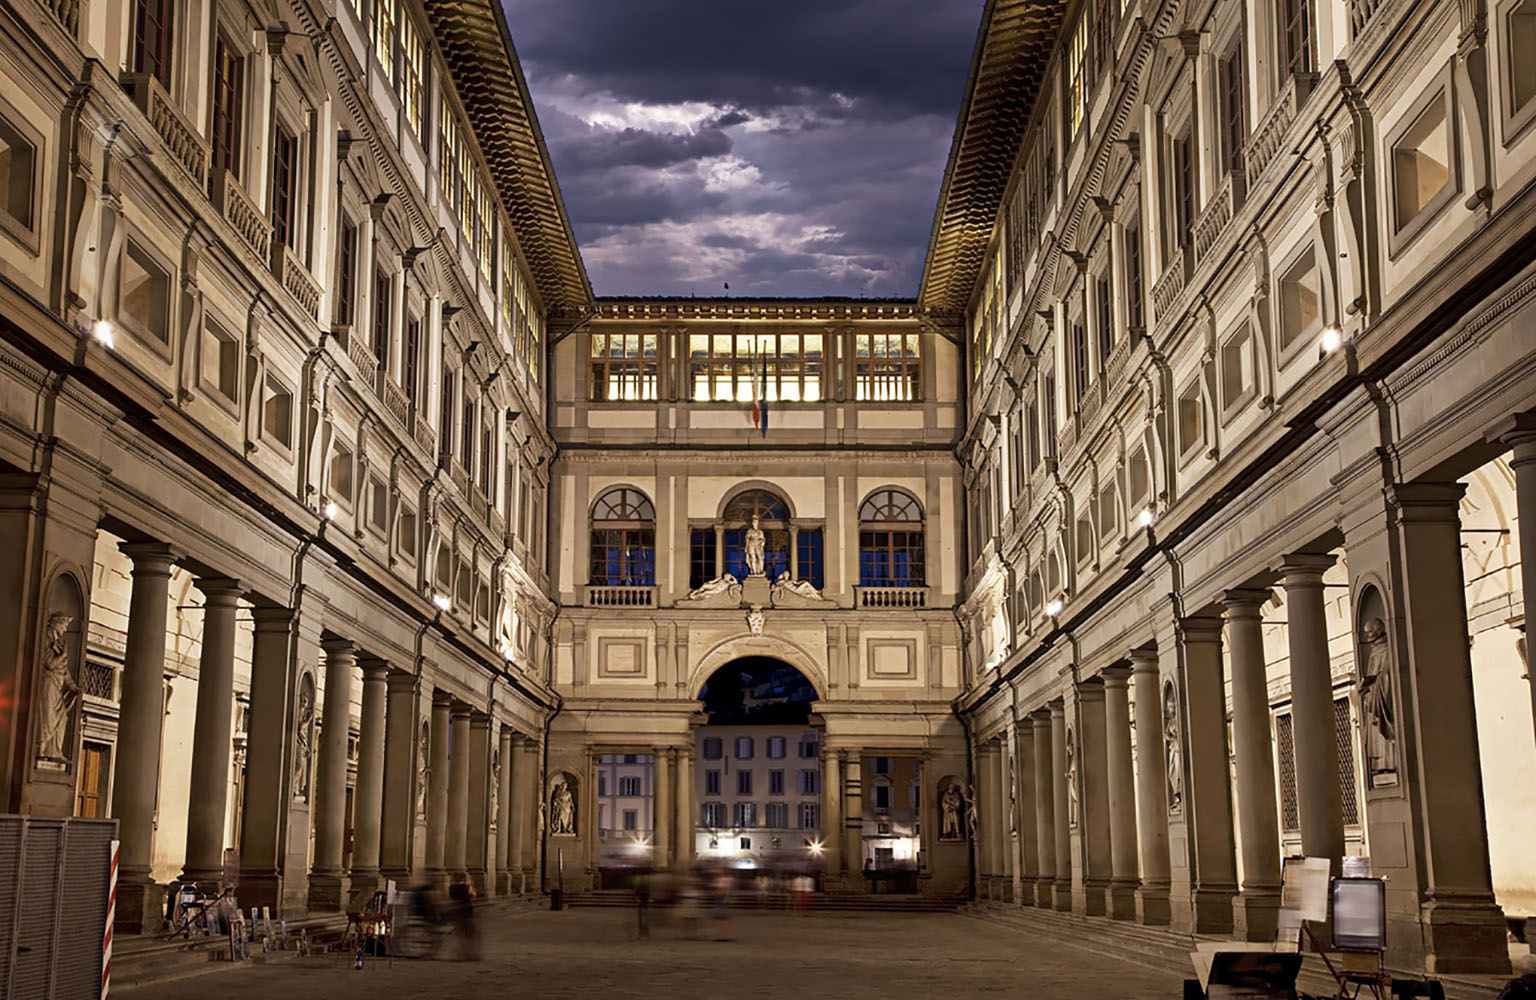 Florence's Uffizi Gallery at night.